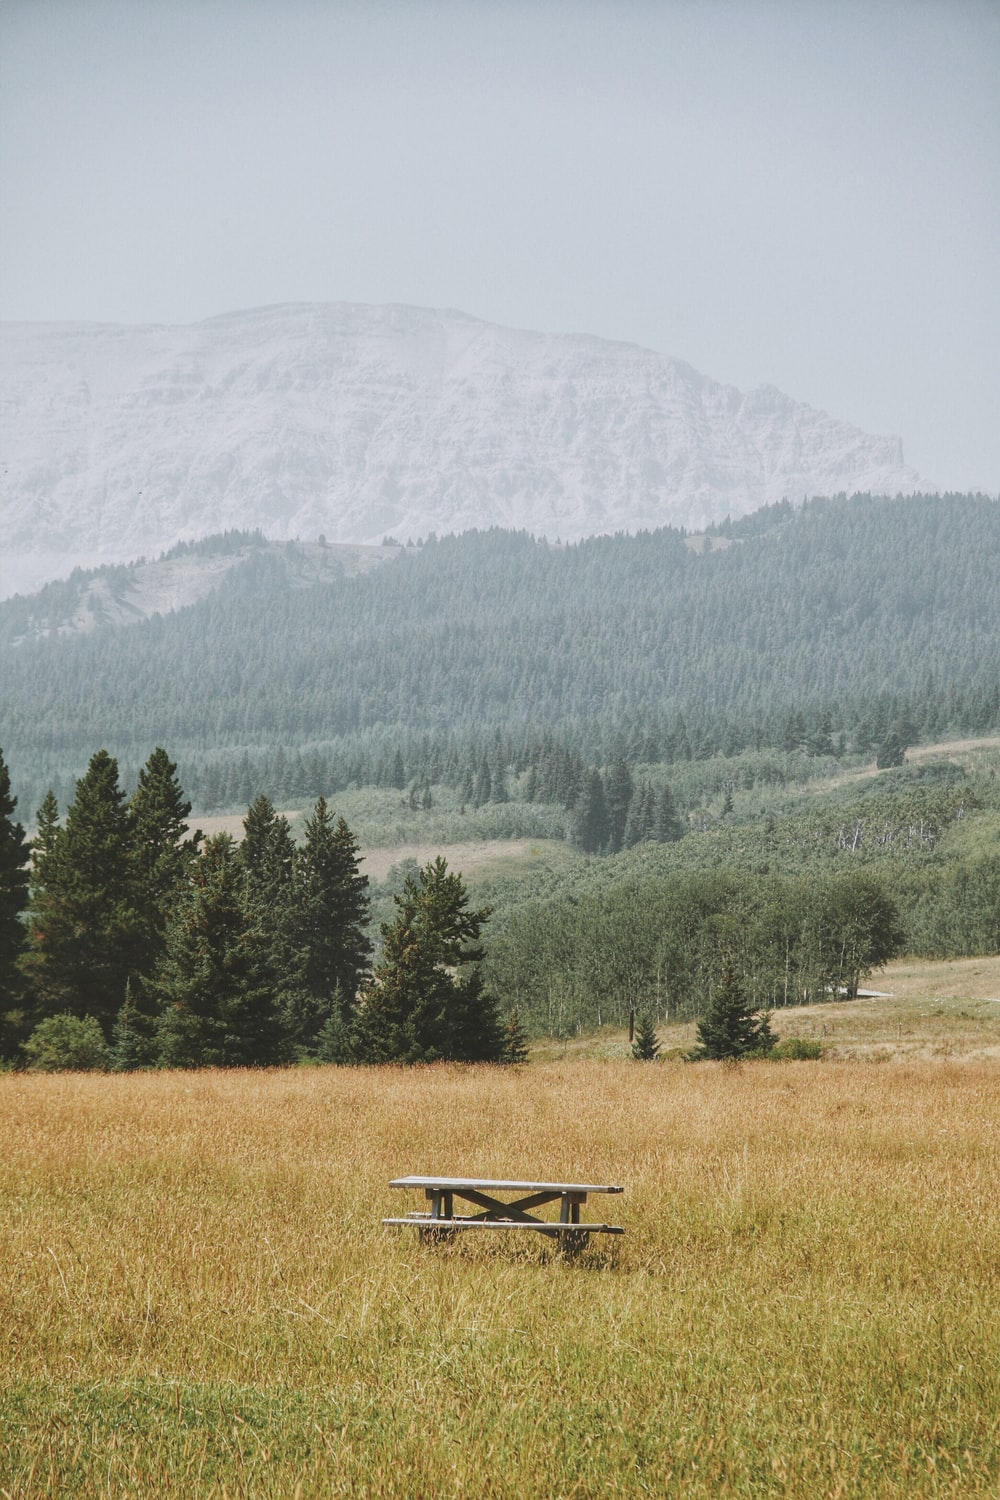 brown wooden bench in middle of open field overlooking mountains